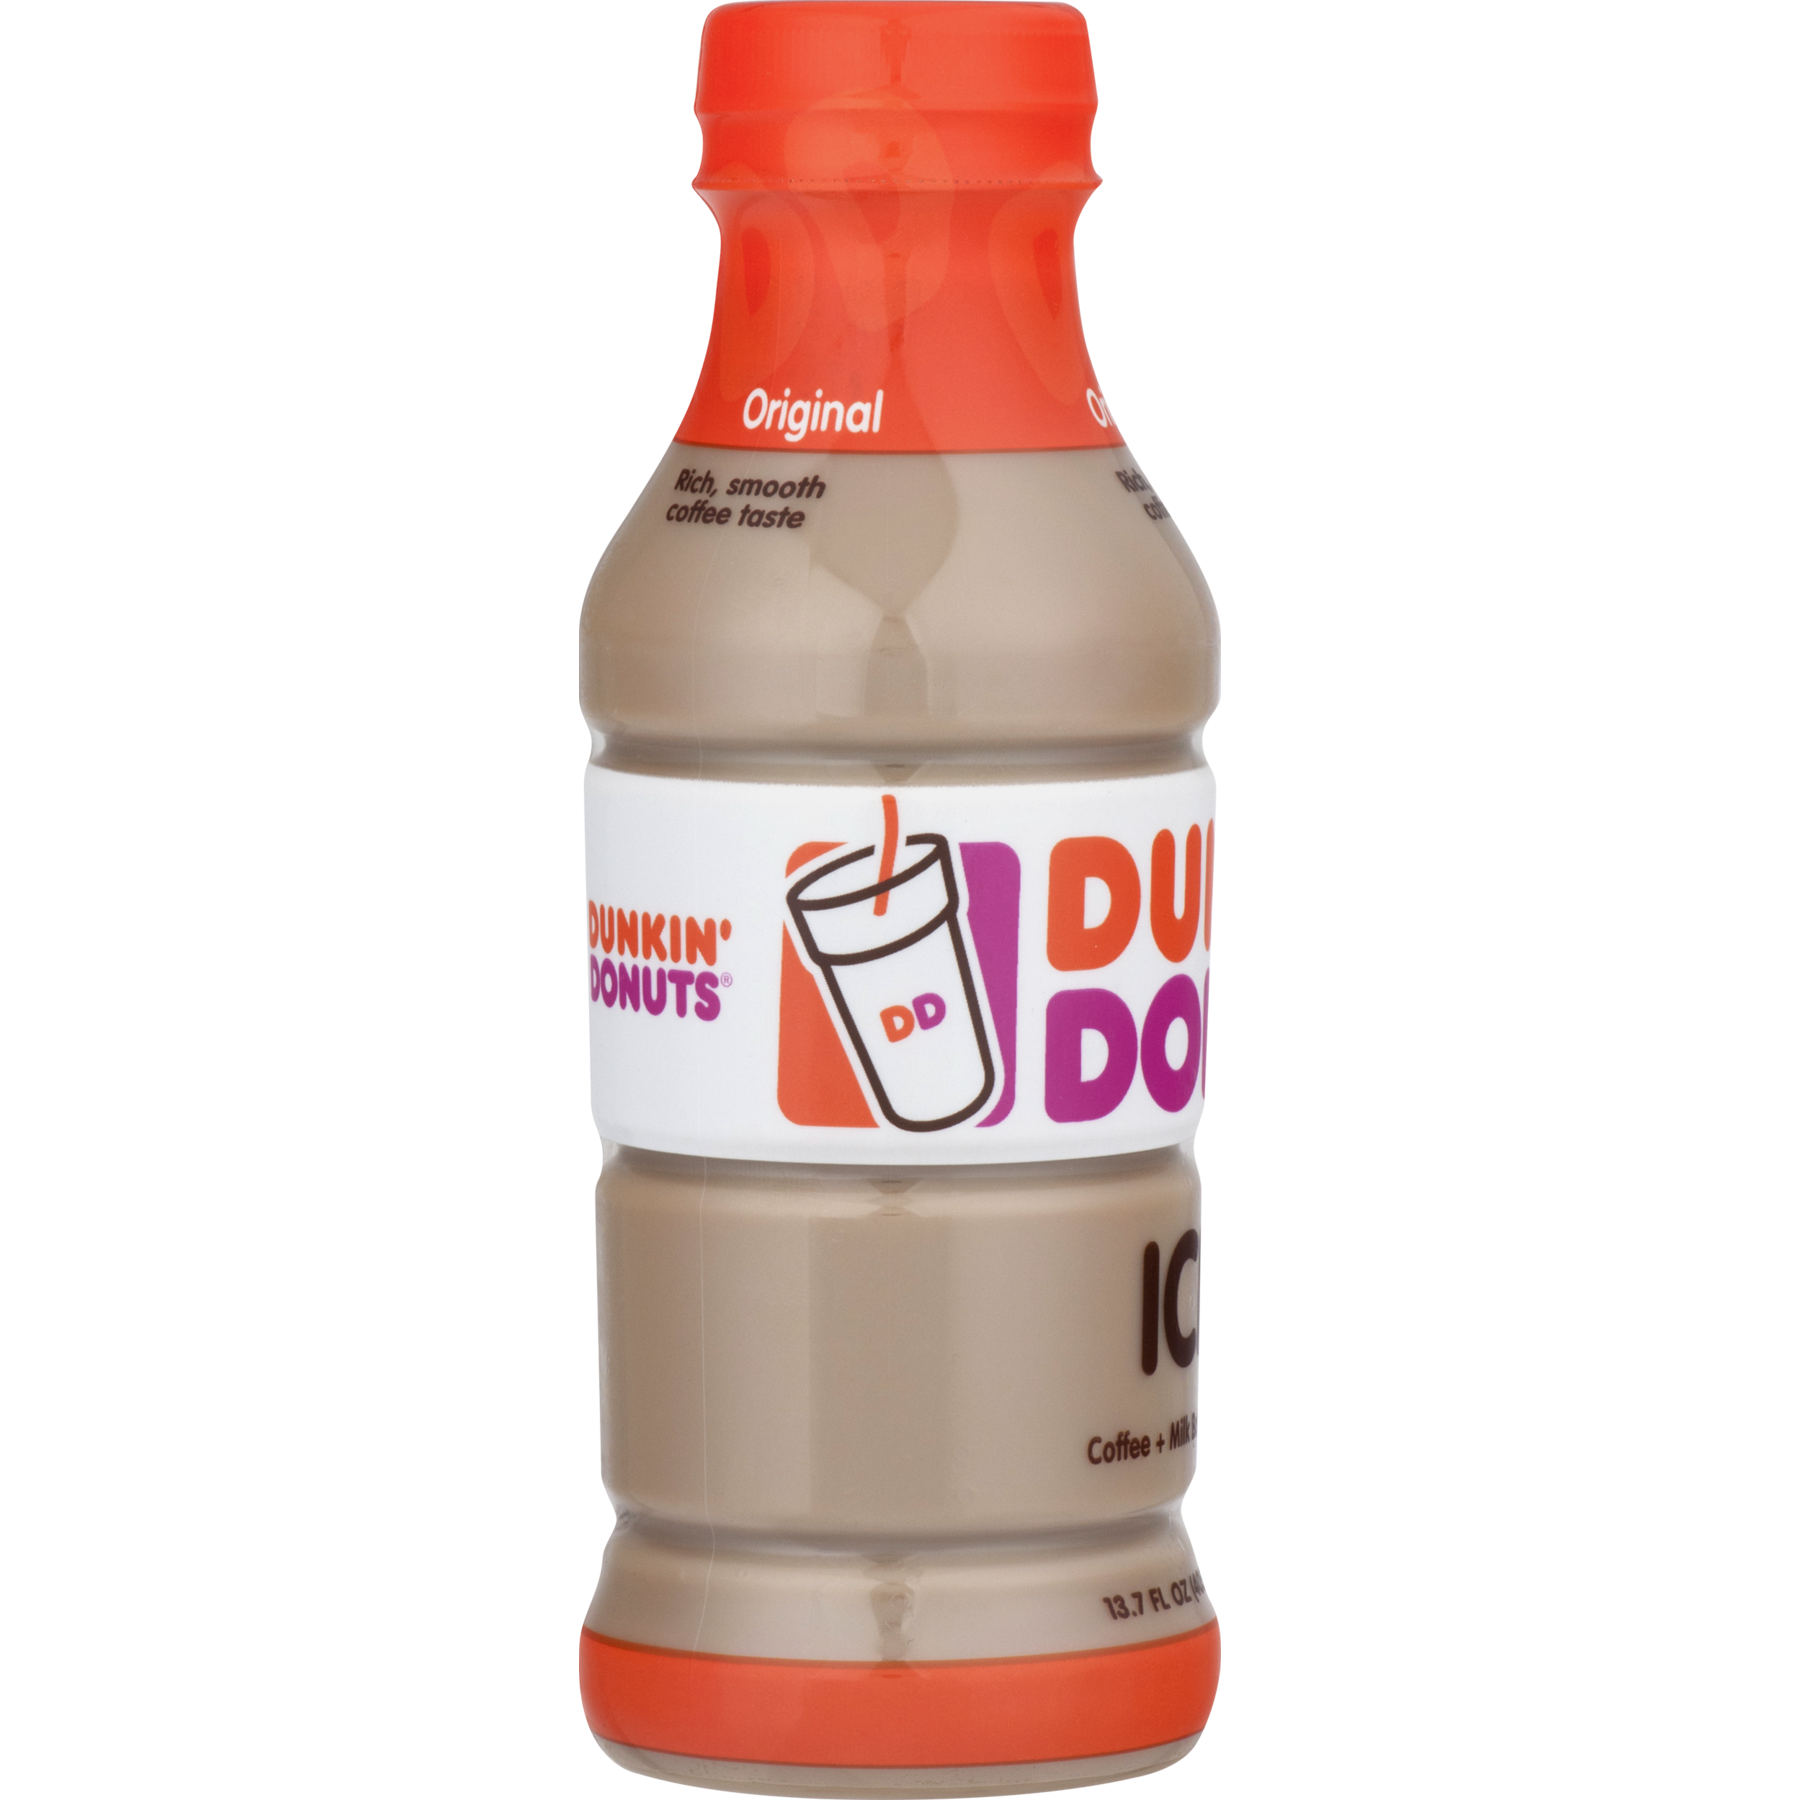 Dunkin\' Donuts Original Iced Coffee 13.7 fl. oz. Bottle - Walmart.com